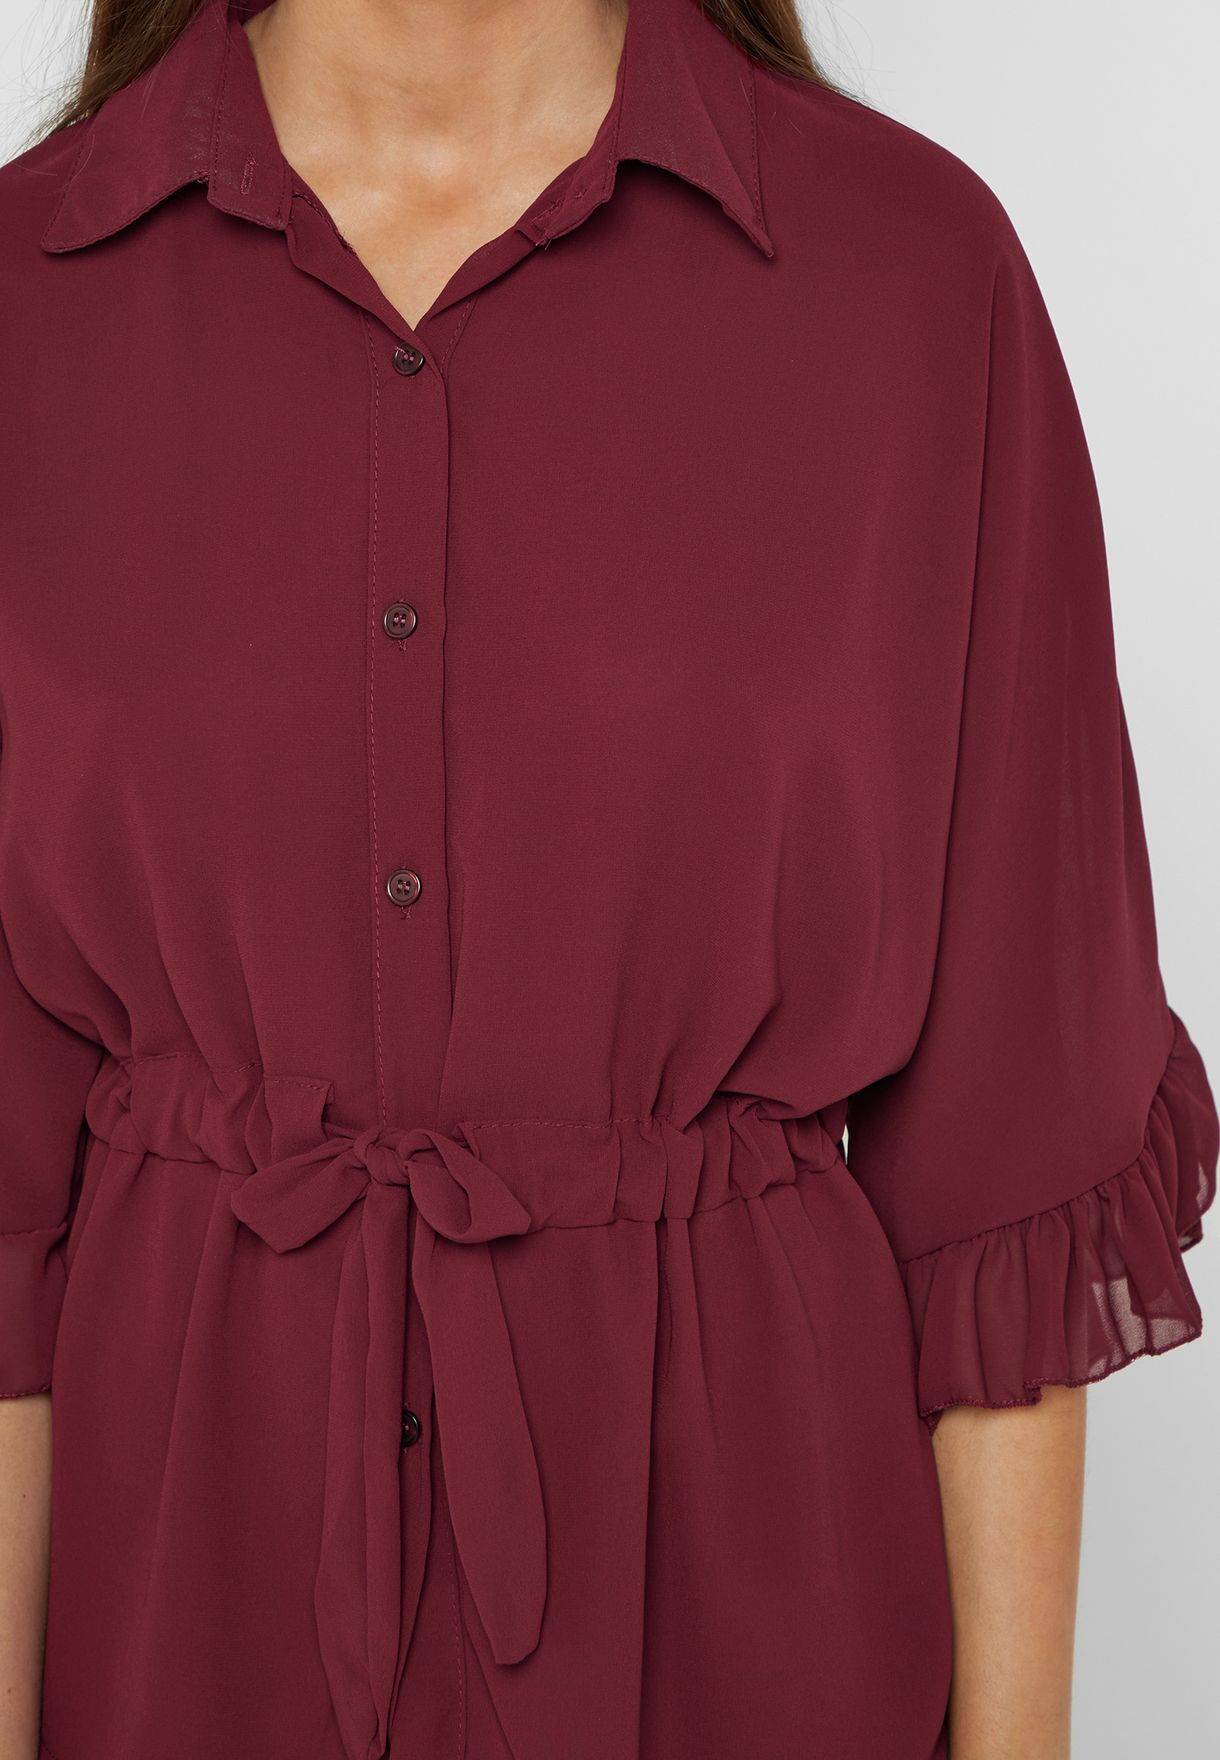 Ruffle Sleeve Drawstring Shirt